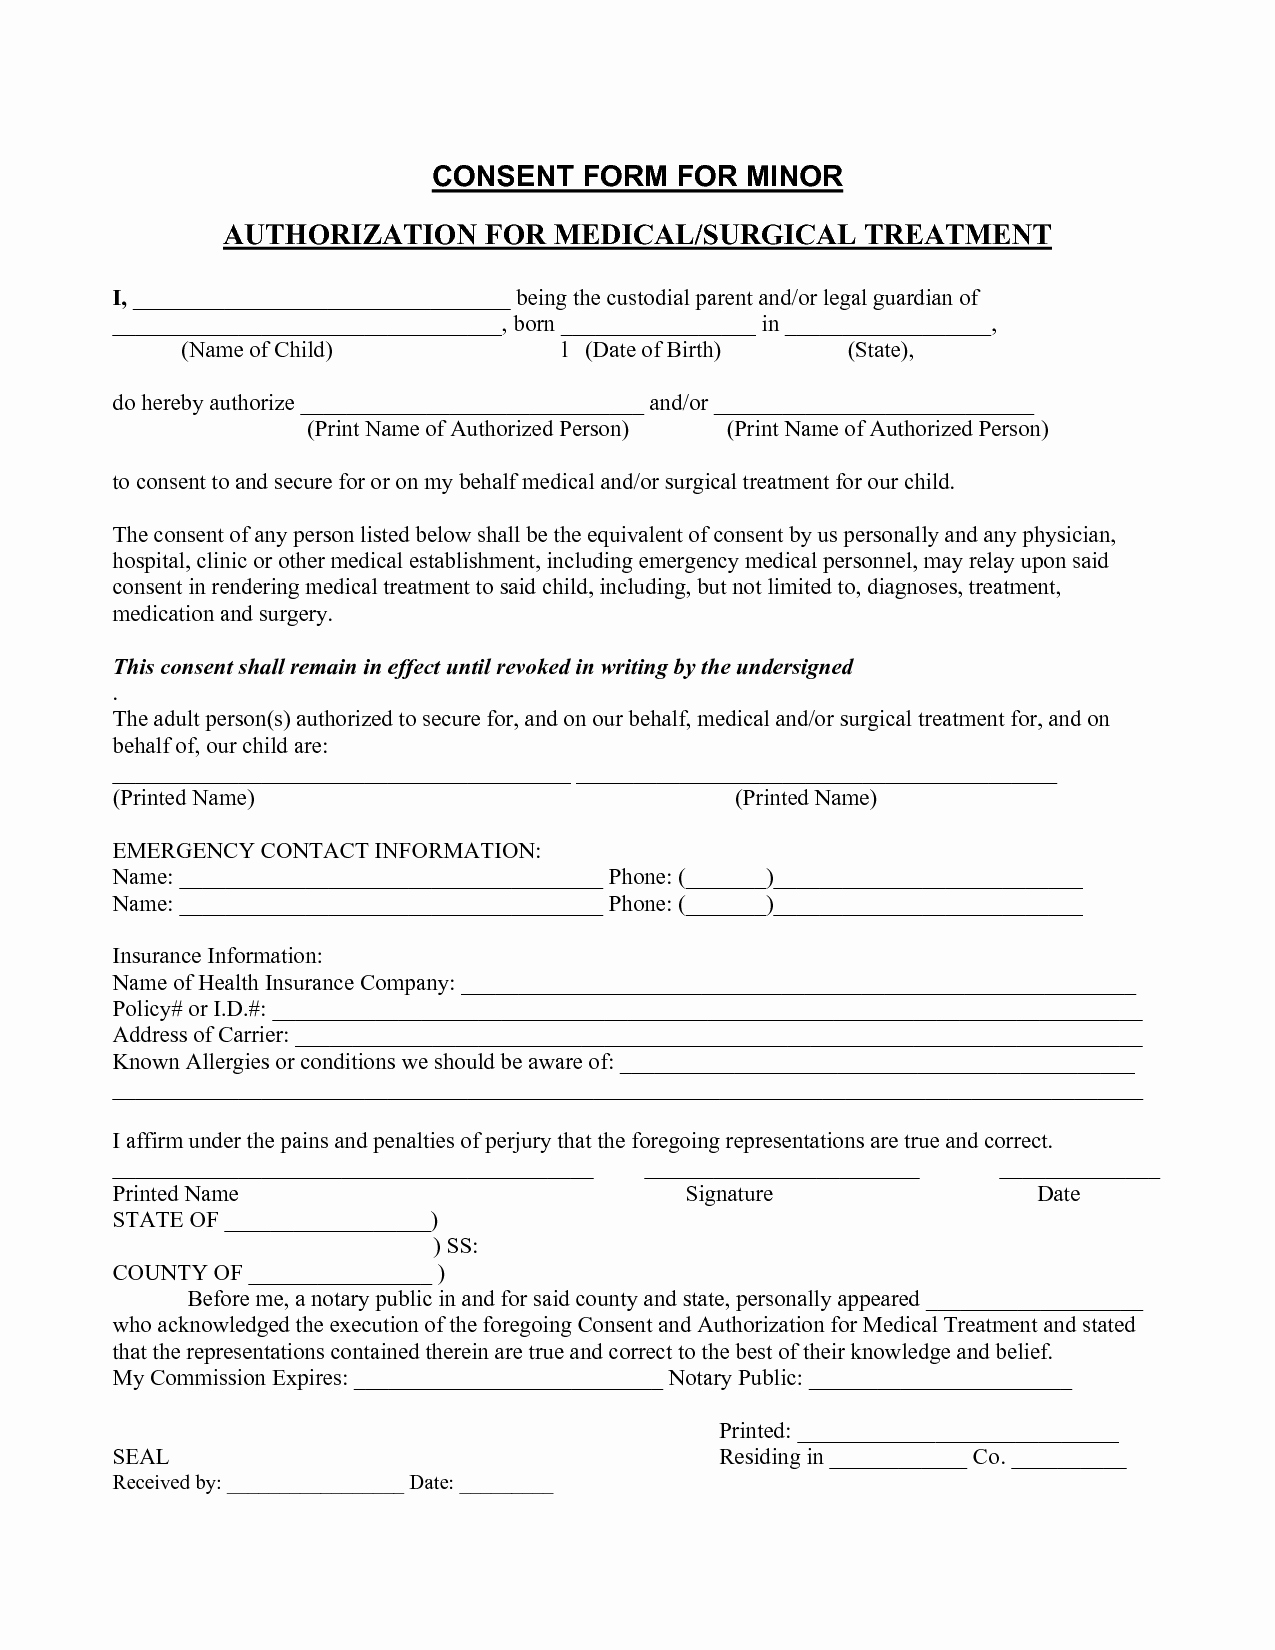 Medical Consent form Template New Medical Consent form Template